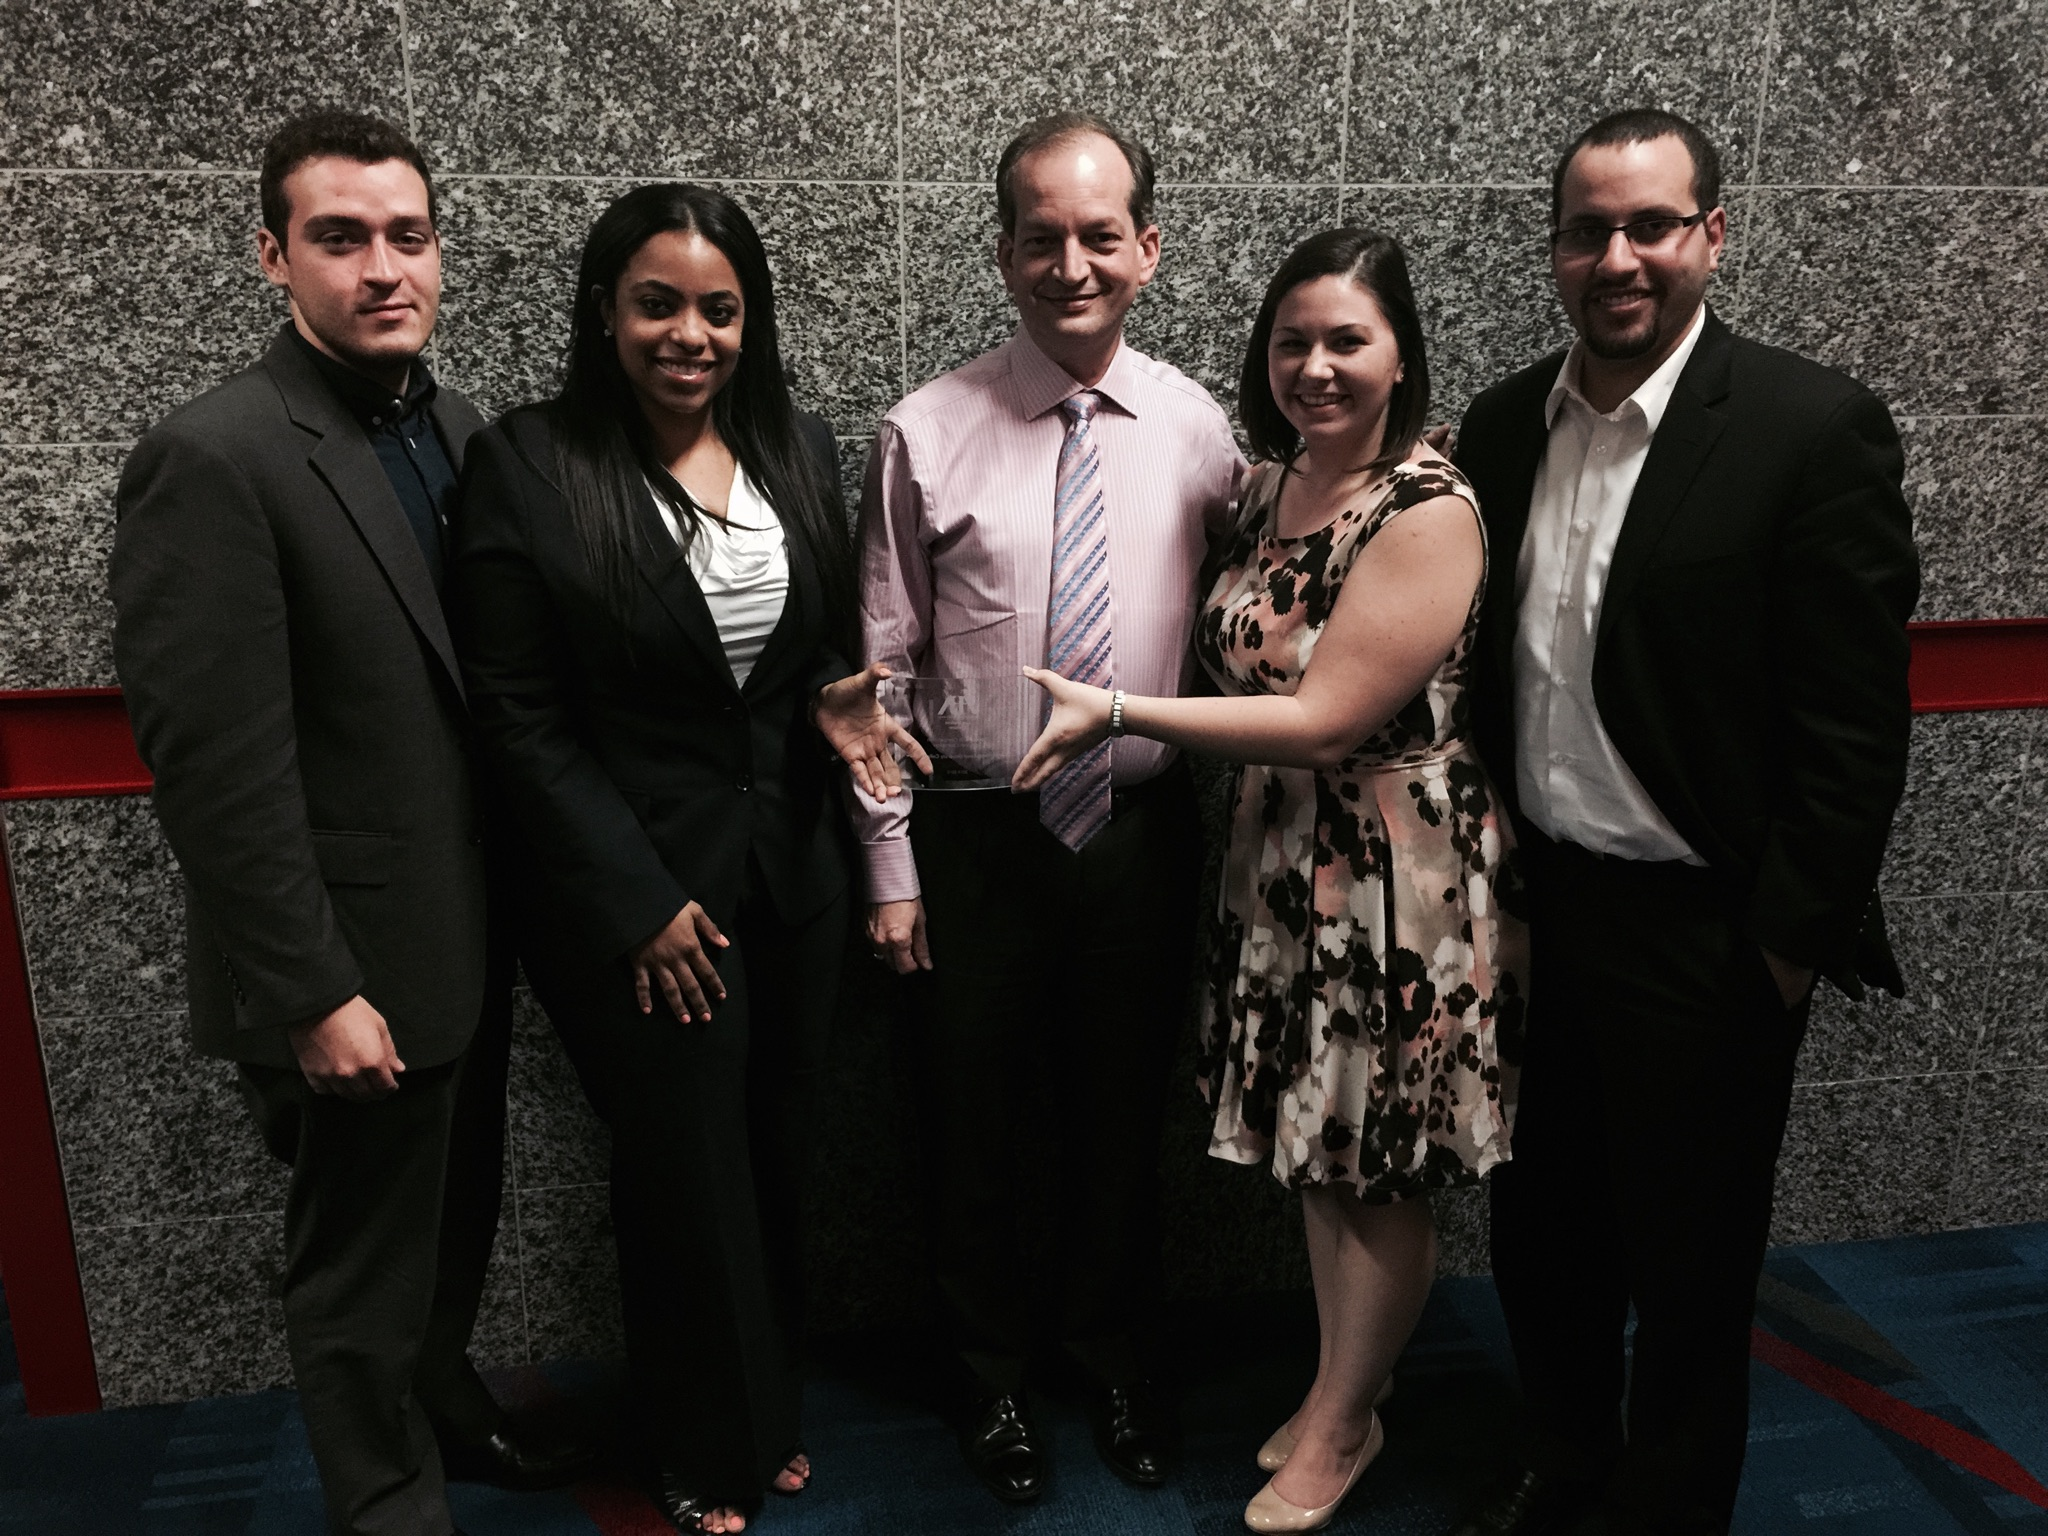 FIU Law's Board of Advocates Negotiation Team takes second place at ABA National Finals